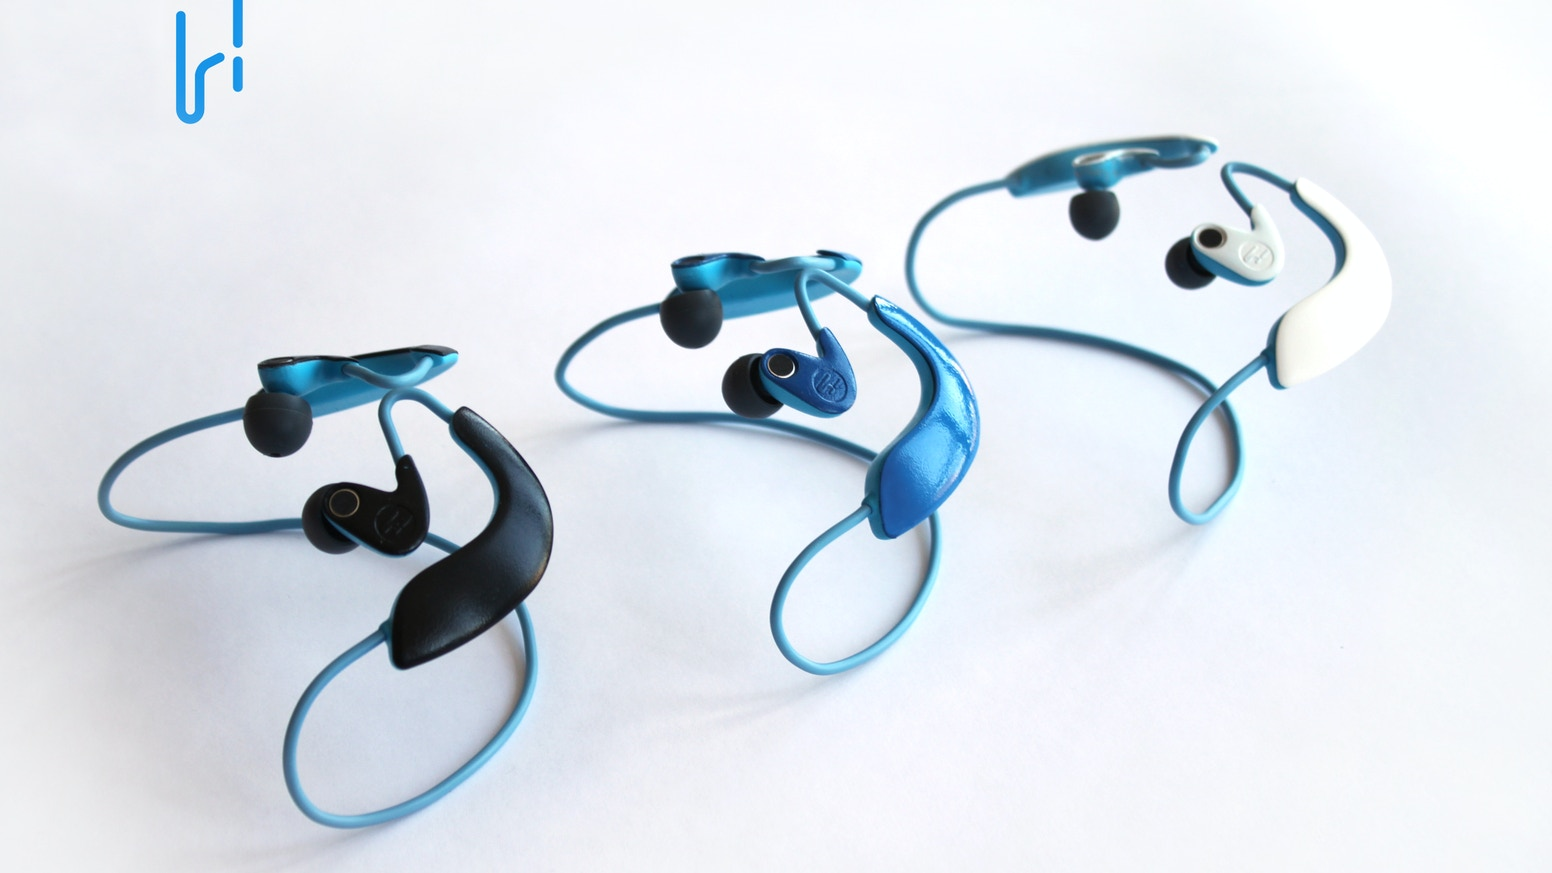 Wireless headphones with built in binaural microphones that let you listen to music, take calls and capture 3D Audio on any device at any time.